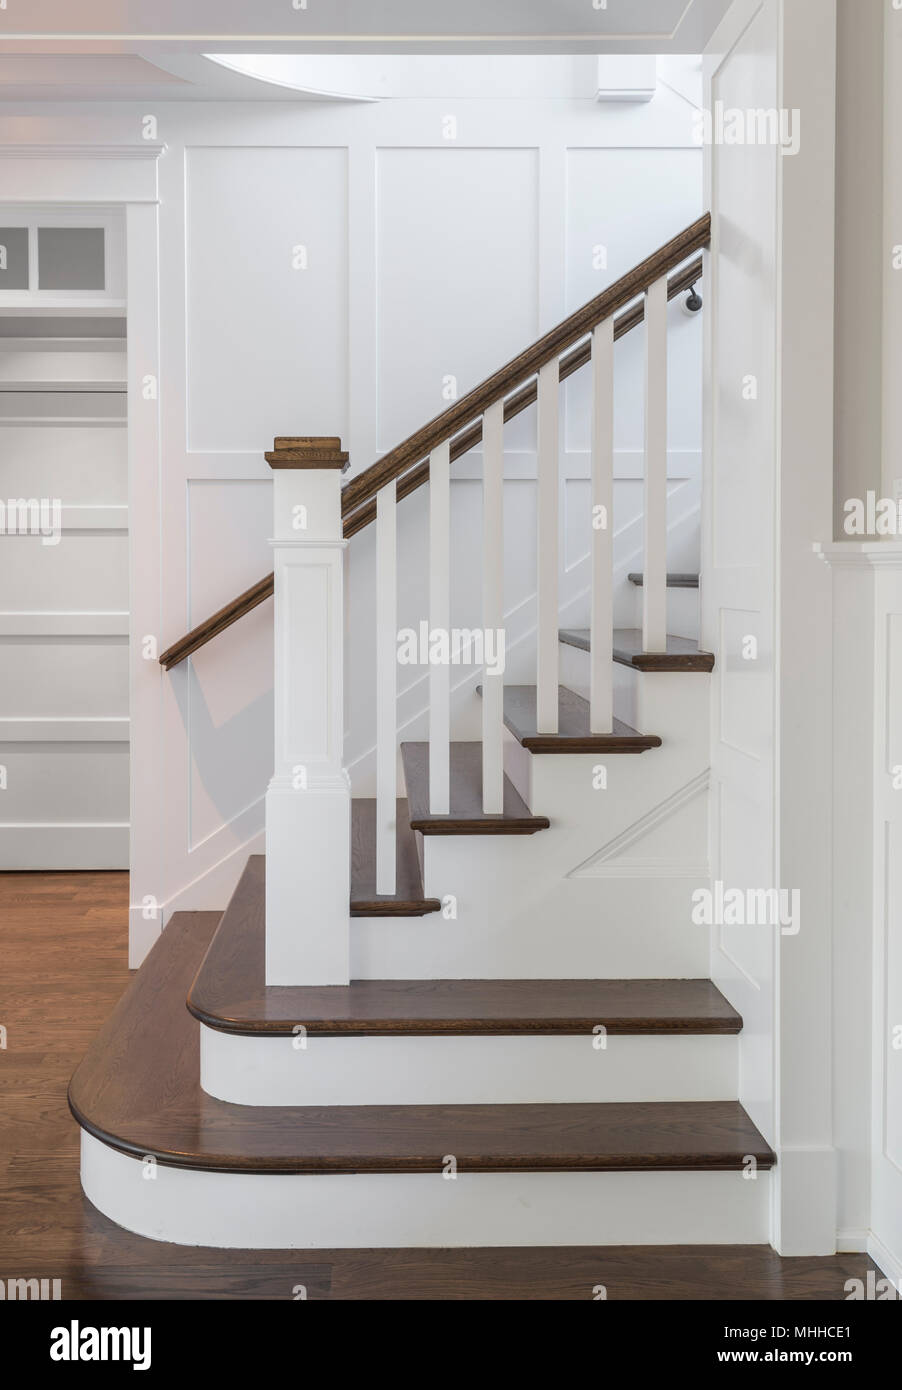 Staircase Steps Side View - Stock Image